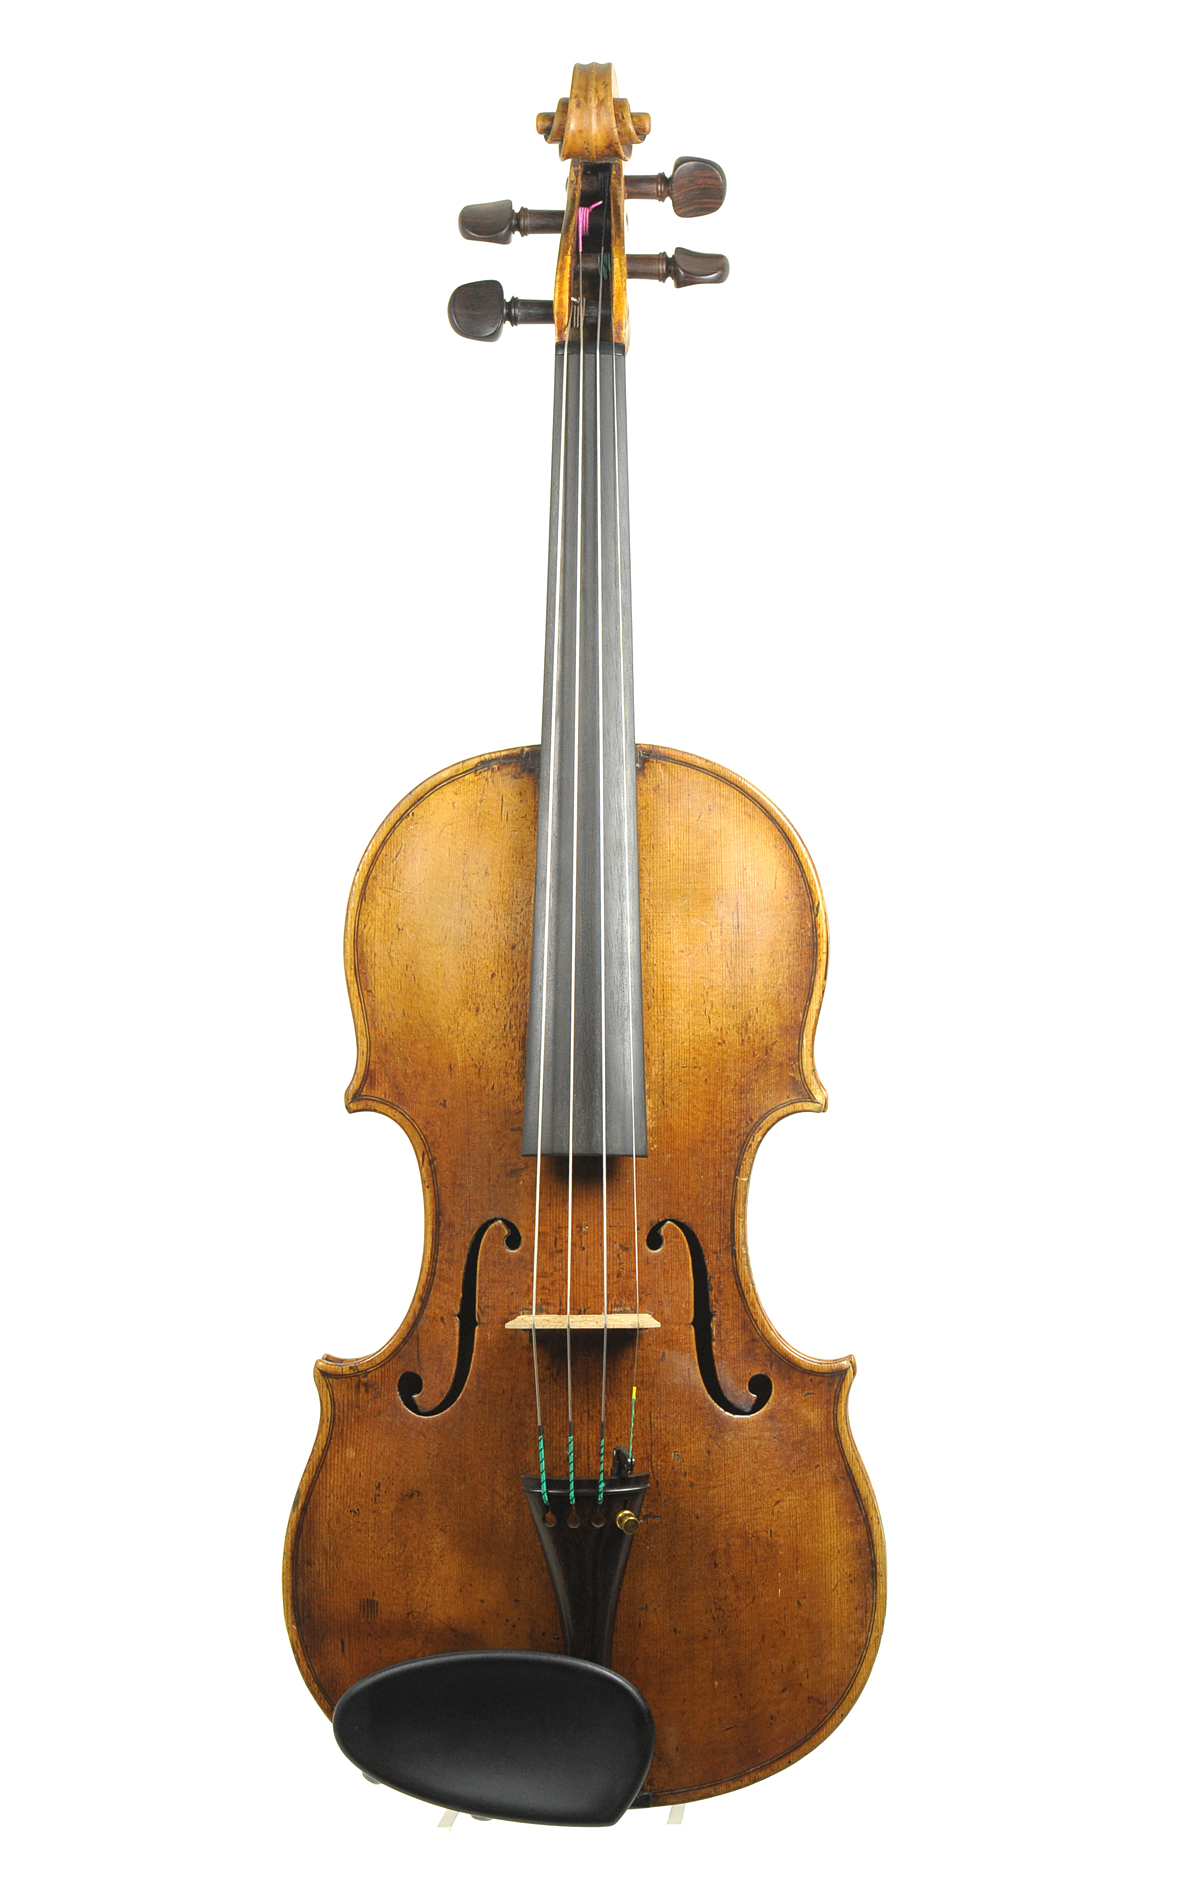 Georg Klotz circa 1790: Feine Violine aus der Yehudi Menuhin Collection